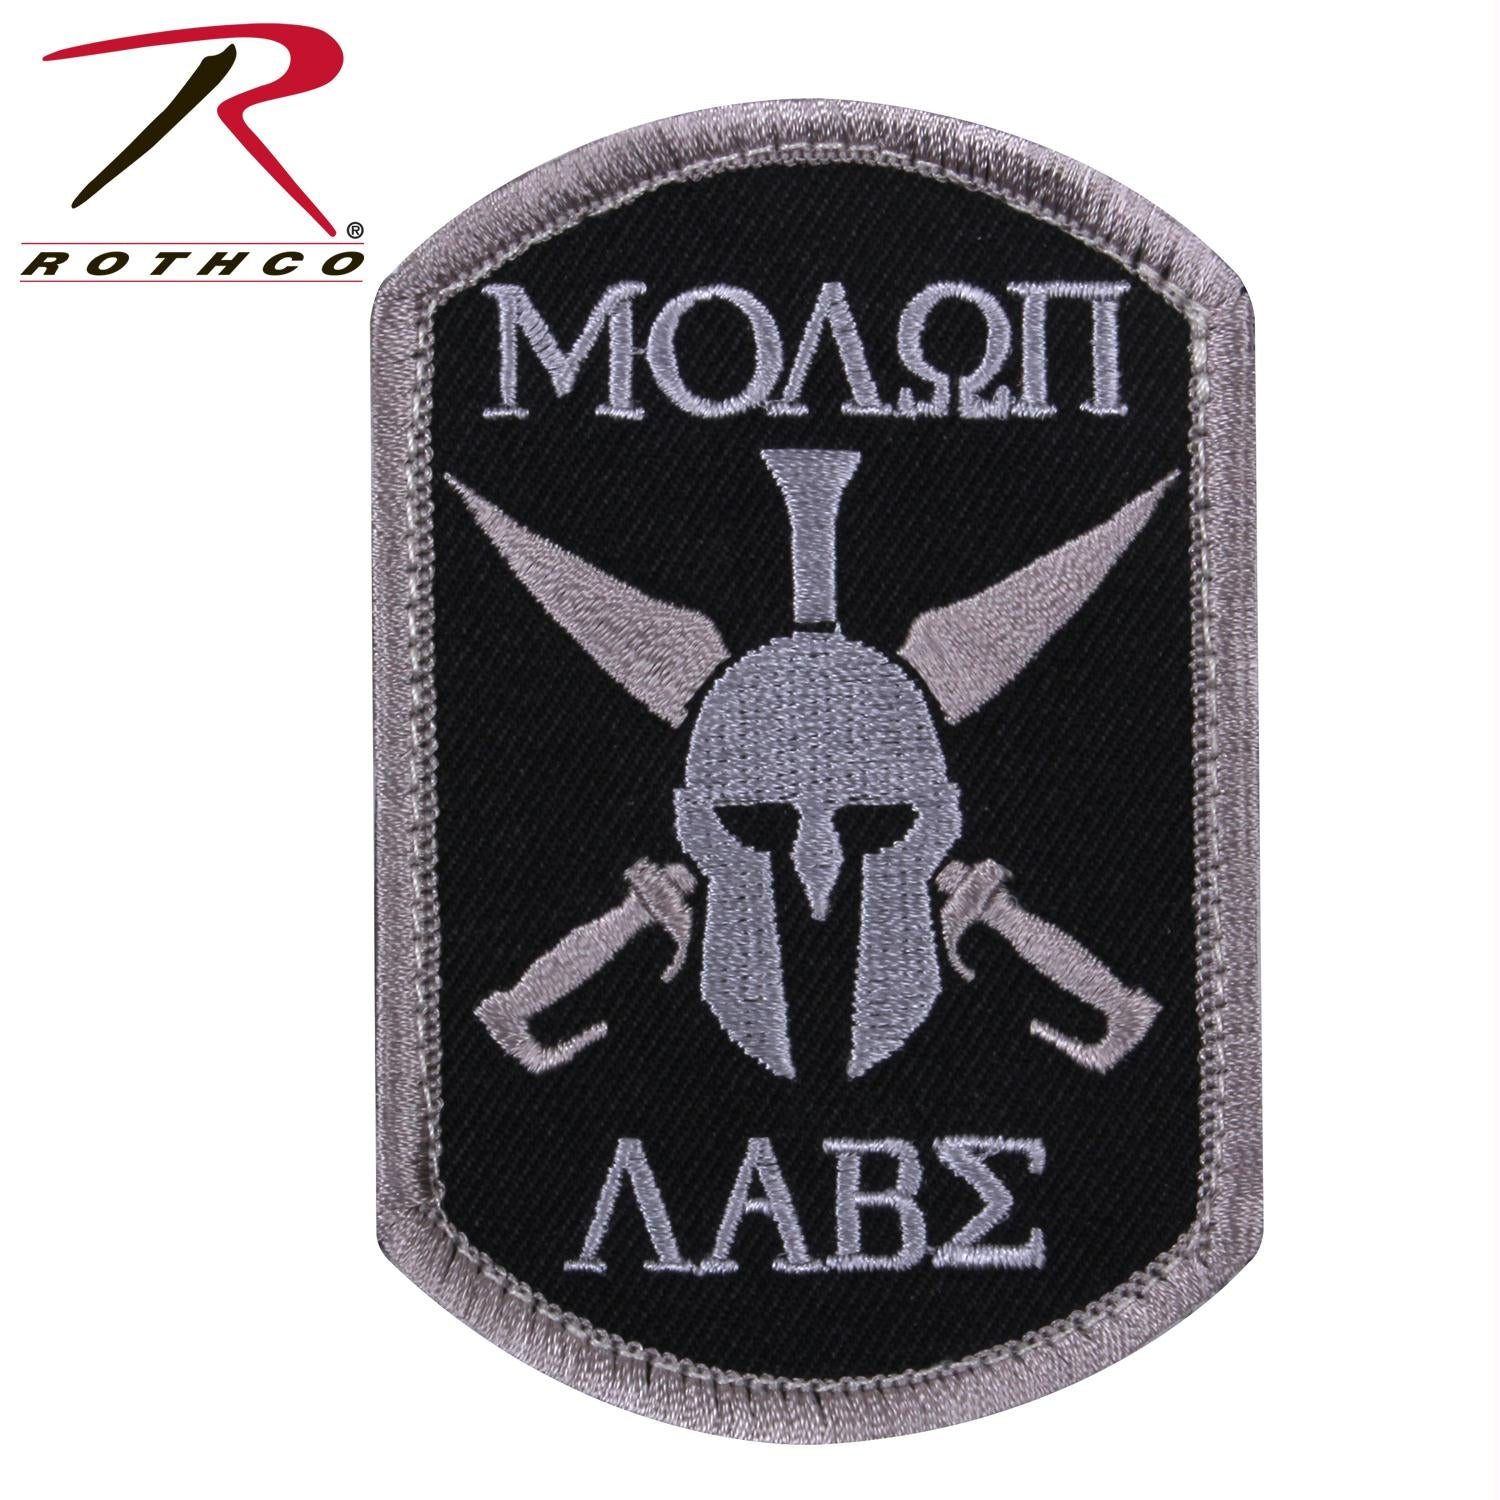 Rothco Molon Labe Spartan Morale Patch - Black / Bulk Packaging / One Size